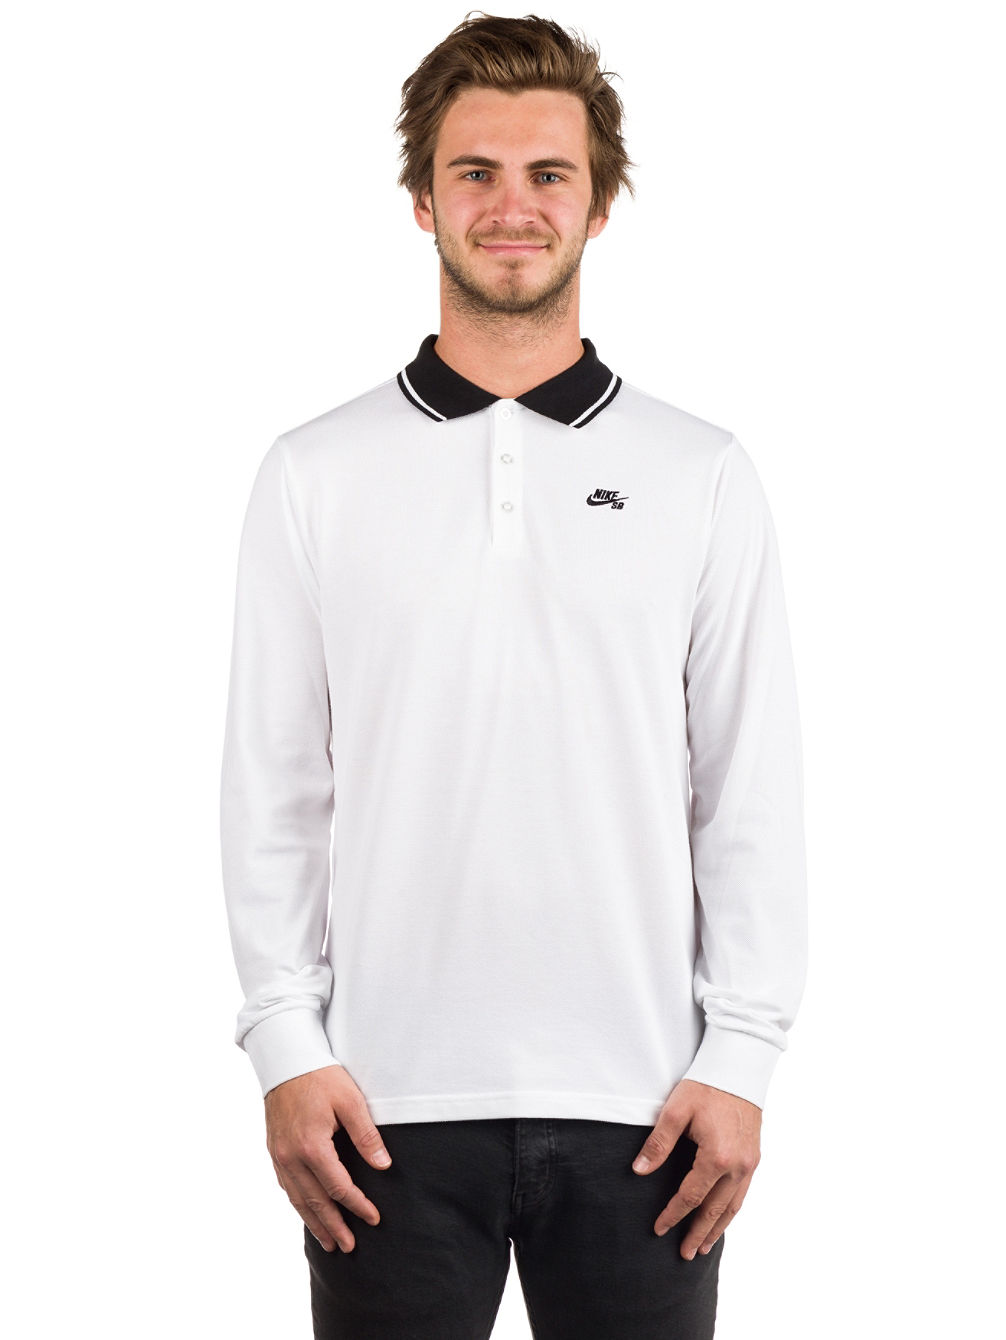 477a59cd Buy Nike SB Dry Polo LS online at Blue Tomato